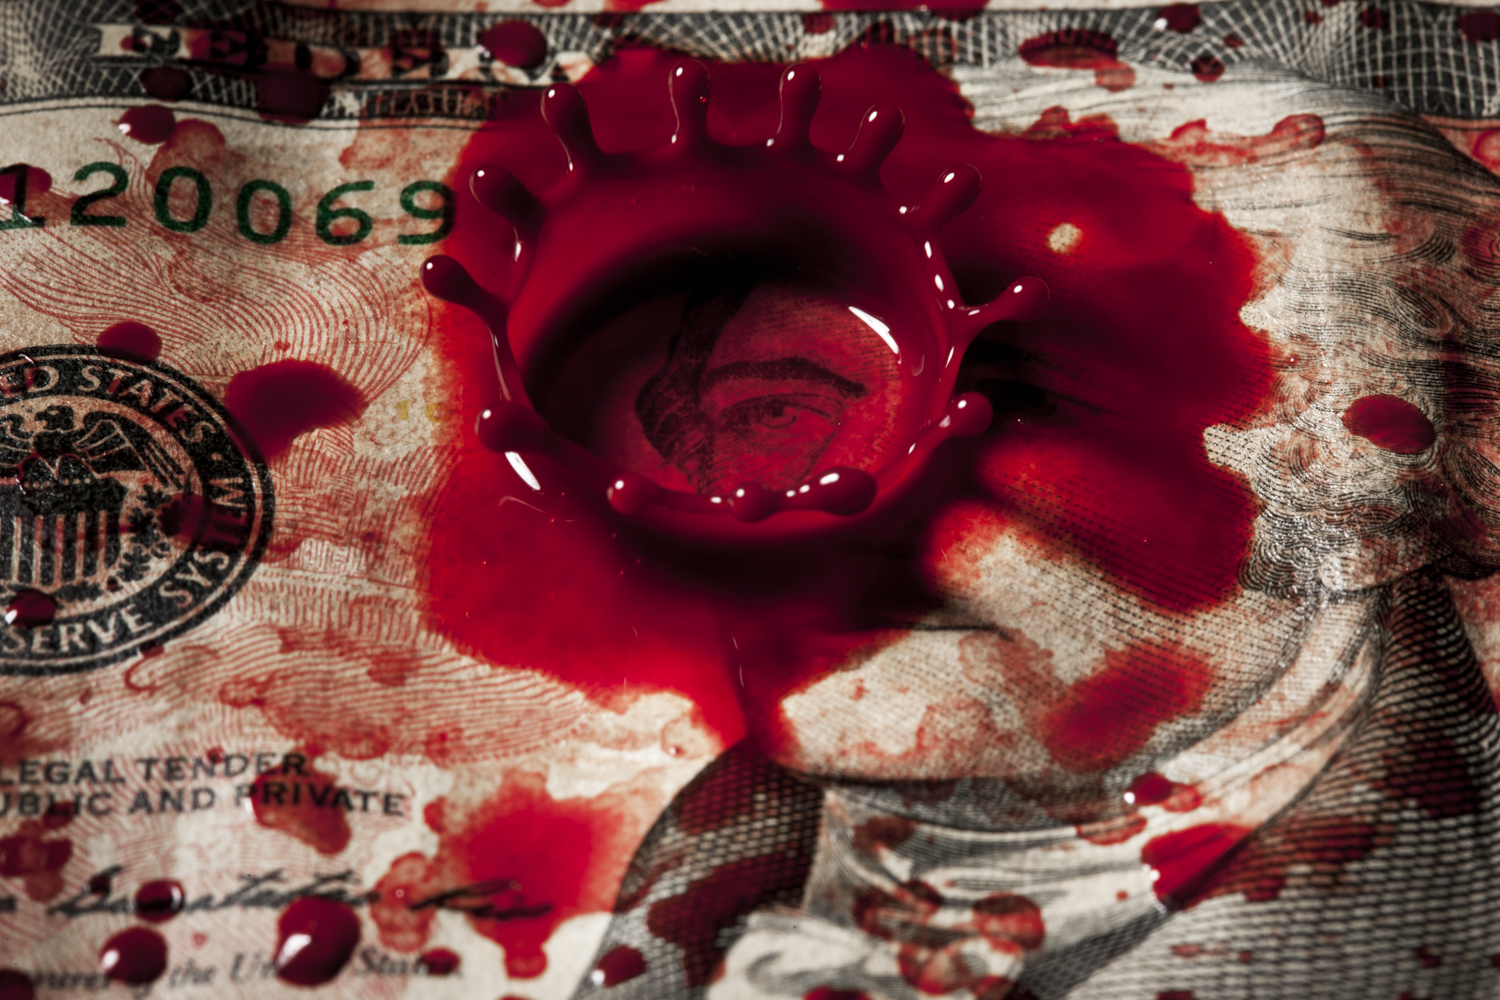 BloodMoney-873-Edit.jpg